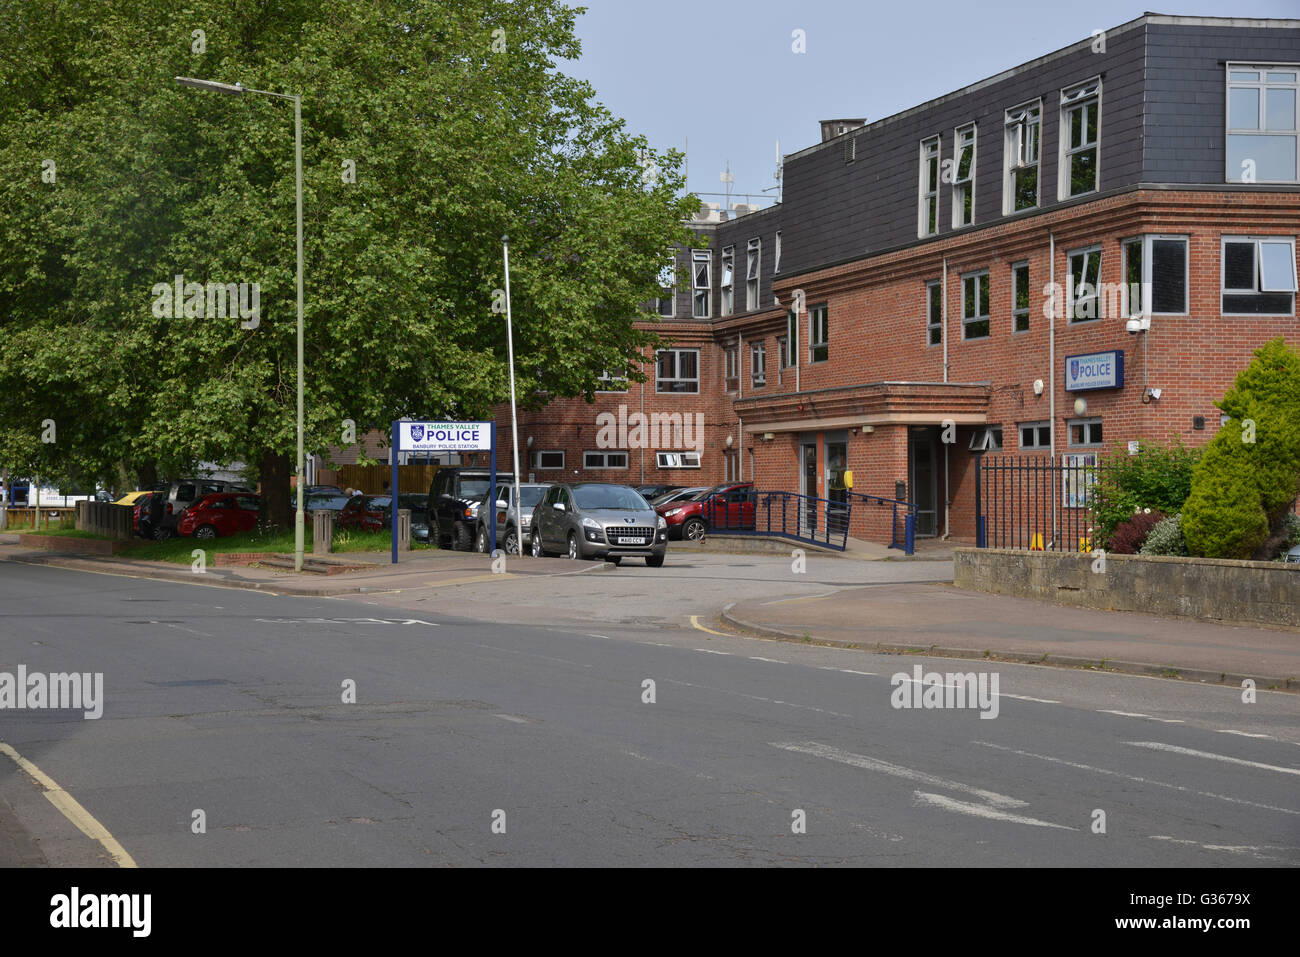 Police Station, Warwick Road, Banbury, Oxfordshire - Stock Image